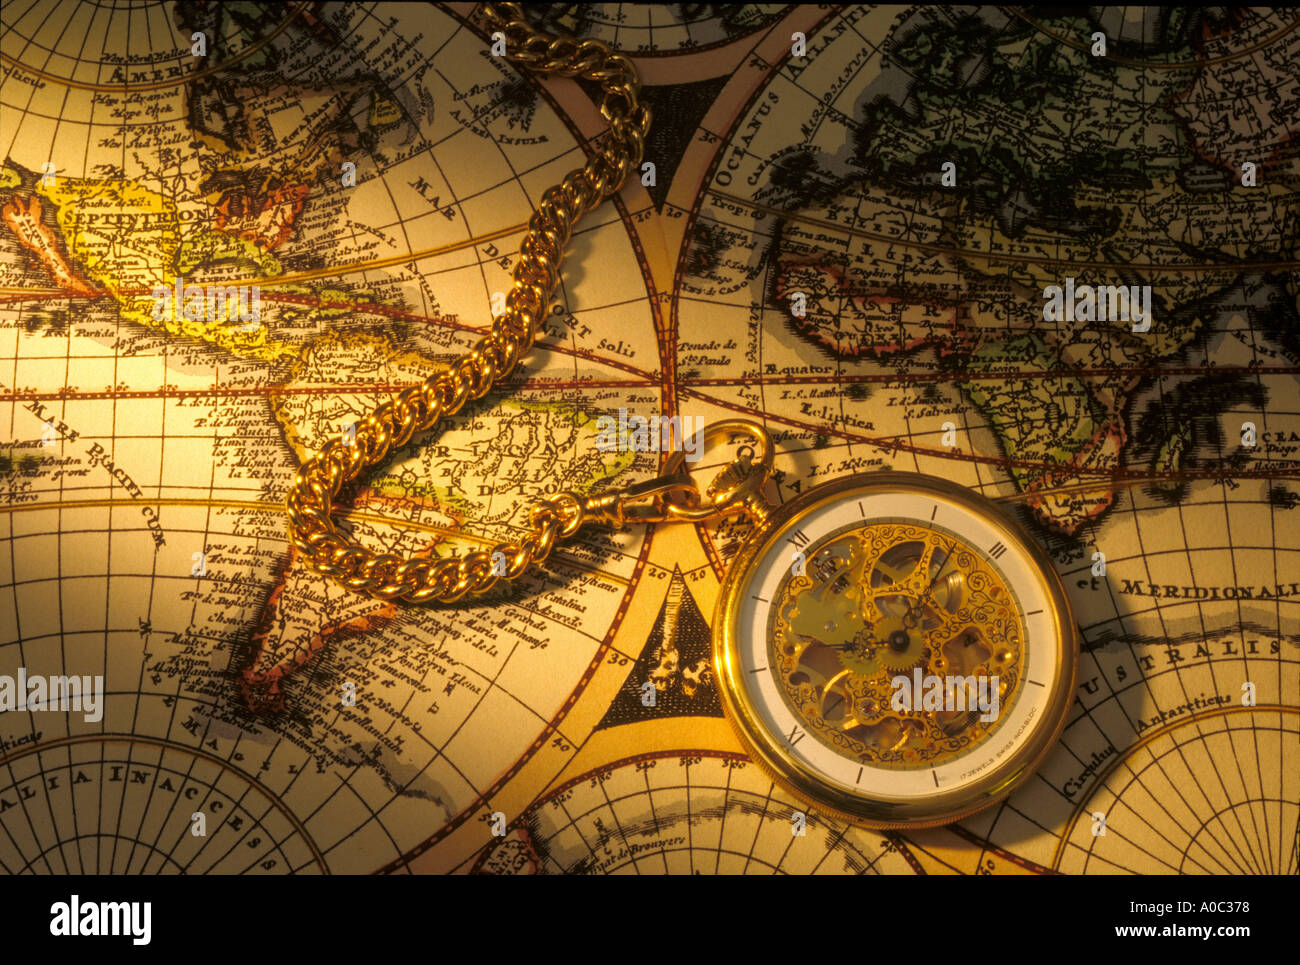 Pocket Watch On Old World Map Stock Photo Alamy - Where to buy old world maps